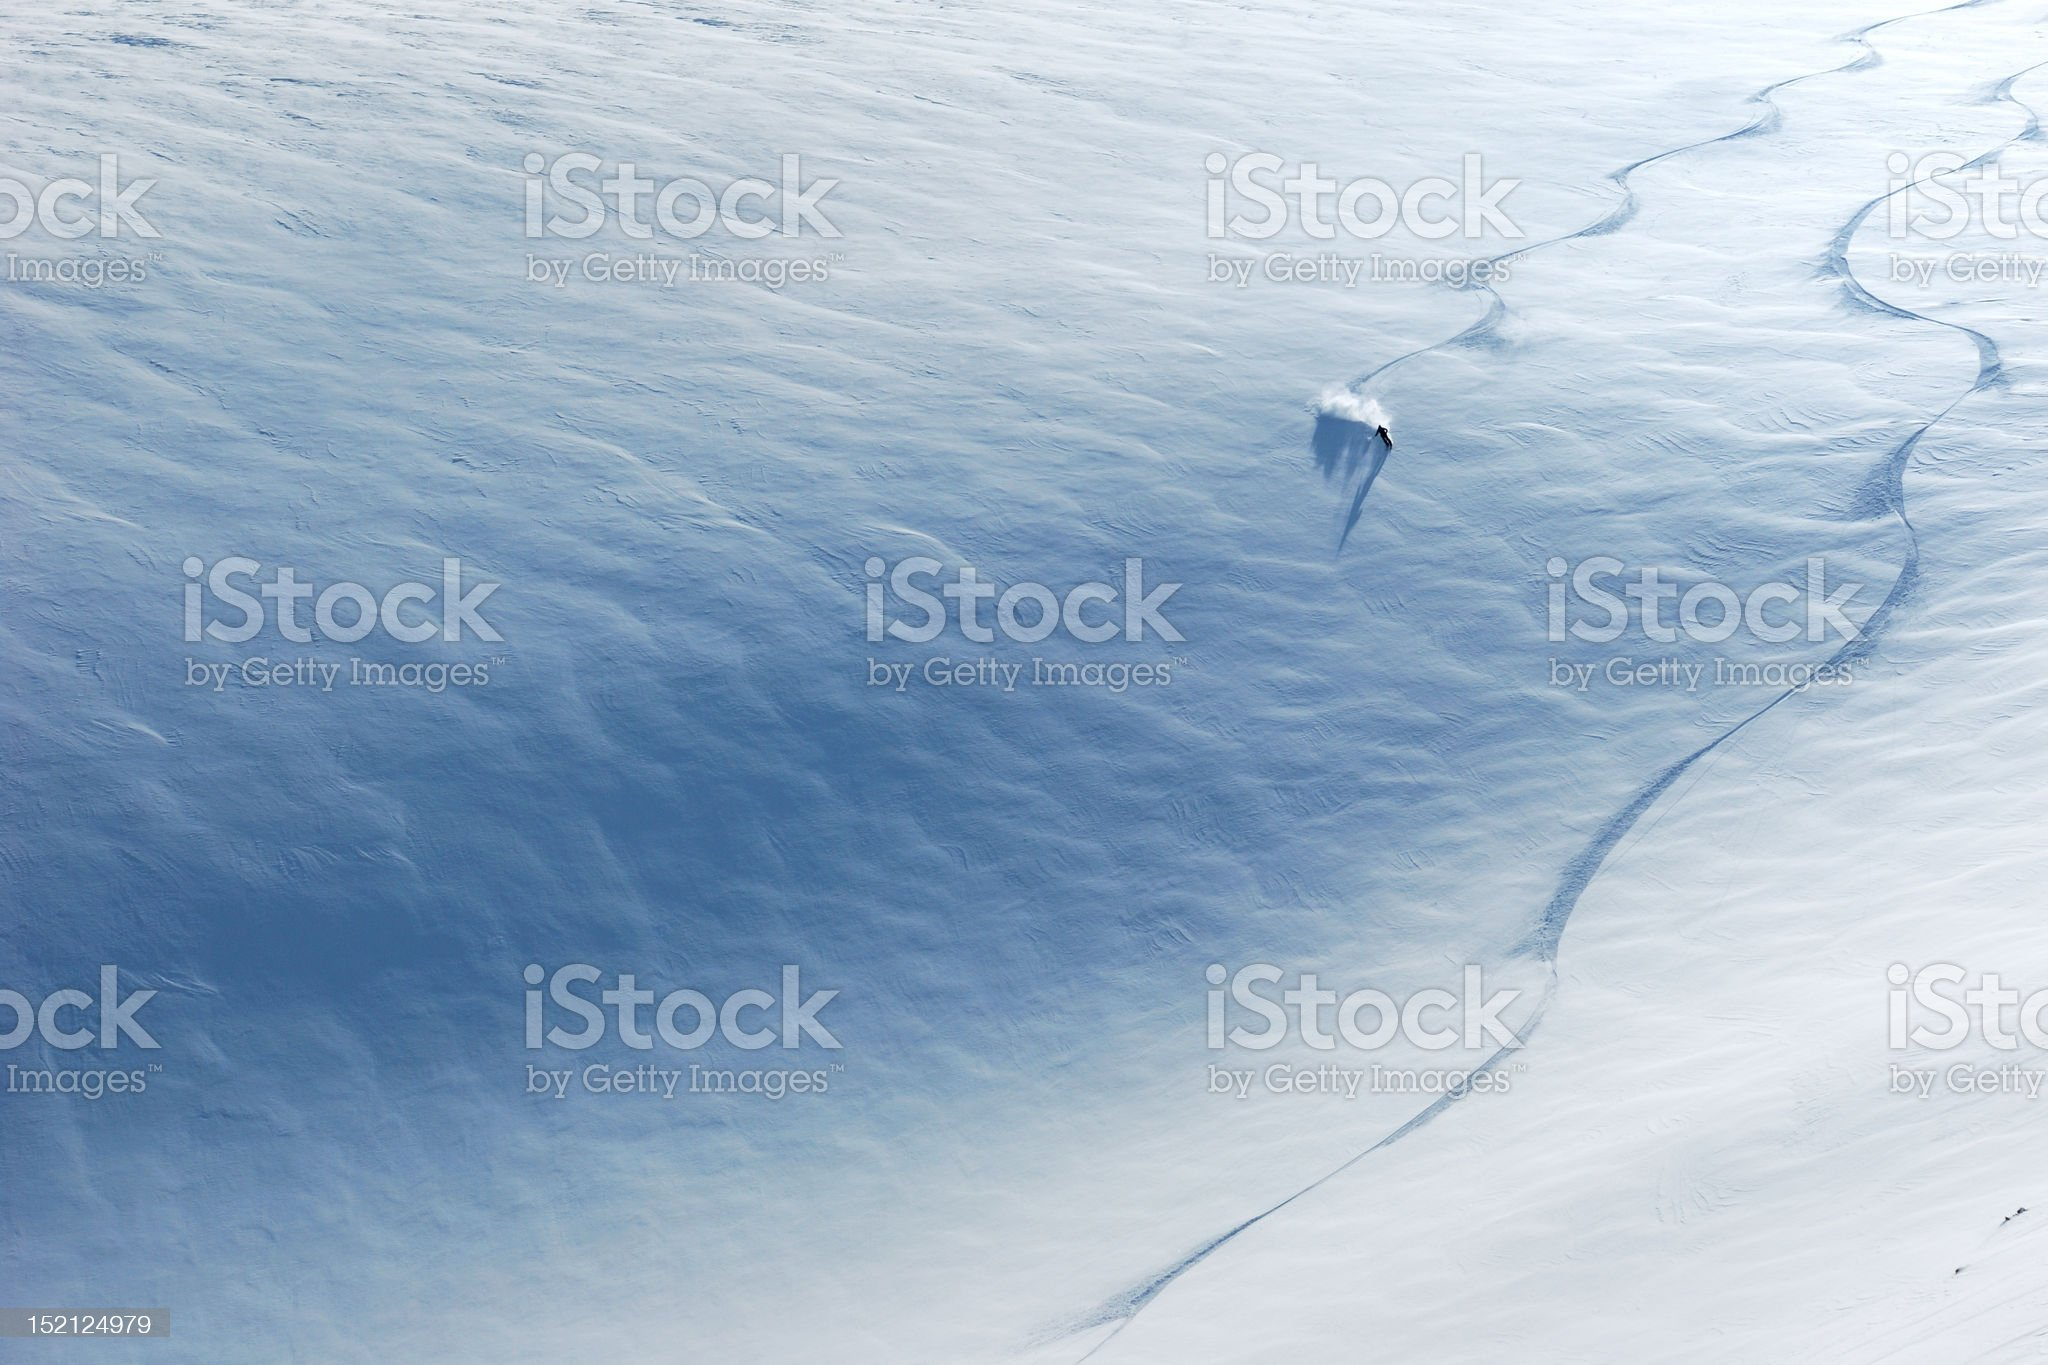 Skier riding down the slope royalty-free stock photo